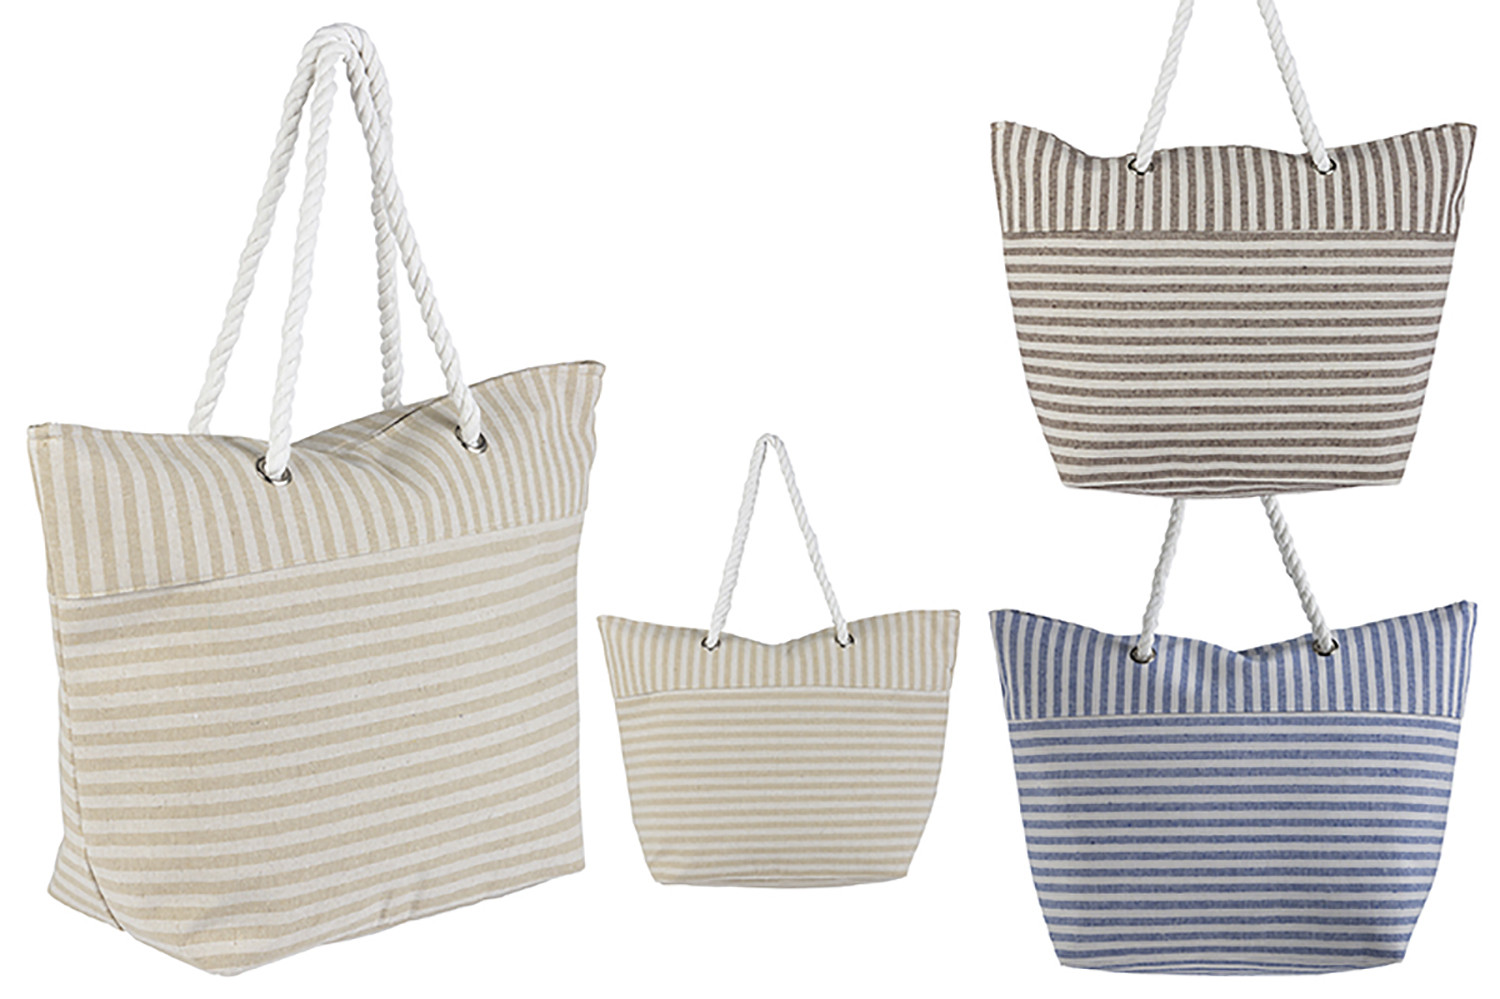 Beach bag with Handle, Striped Design Original Three Colors, Home and More